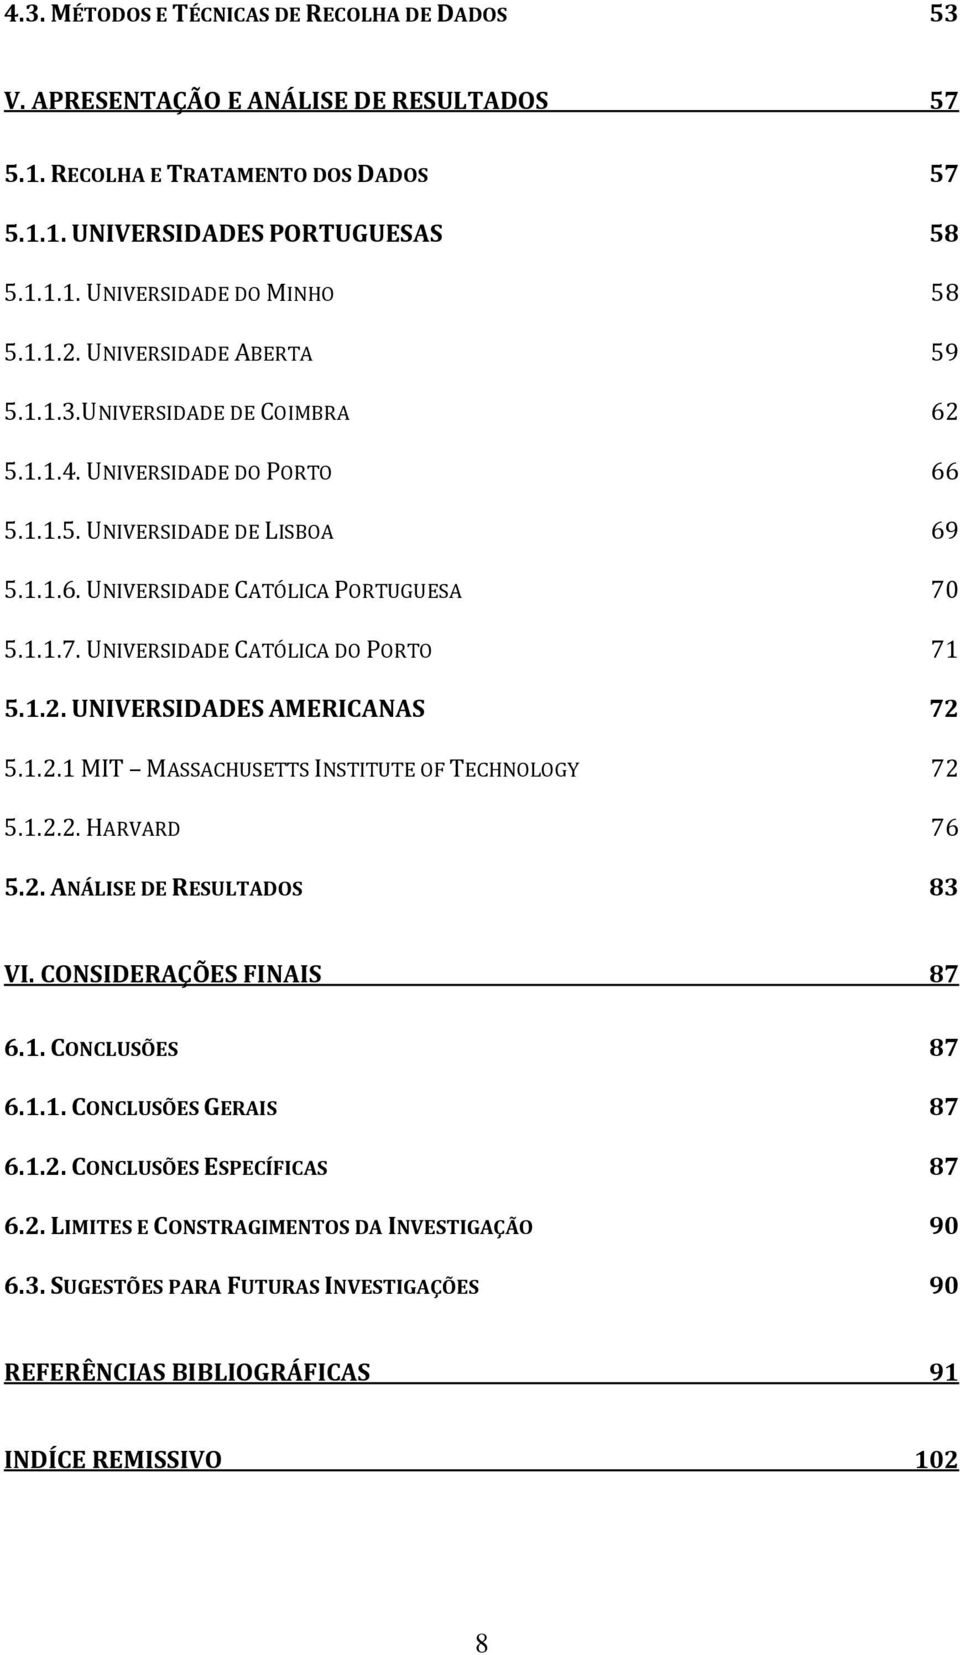 5.1.1.7. UNIVERSIDADE CATÓLICA DO PORTO 71 5.1.2. UNIVERSIDADES AMERICANAS 72 5.1.2.1 MIT MASSACHUSETTS INSTITUTE OF TECHNOLOGY 72 5.1.2.2. HARVARD 76 5.2. ANÁLISE DE RESULTADOS 83 VI.